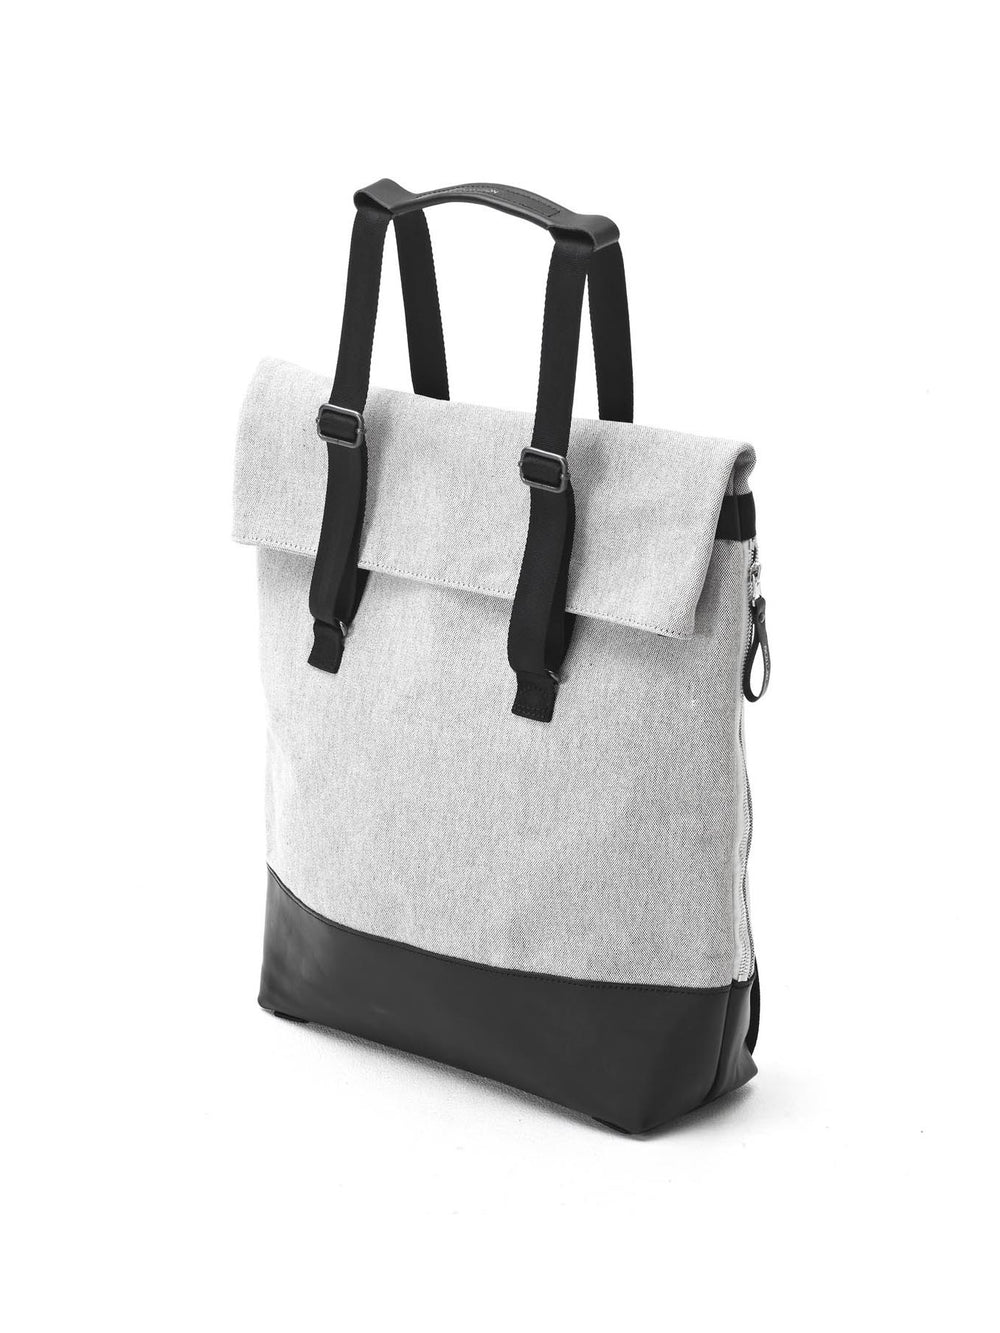 Organic and recycled certified cotton have been used for this Qwstion Tote